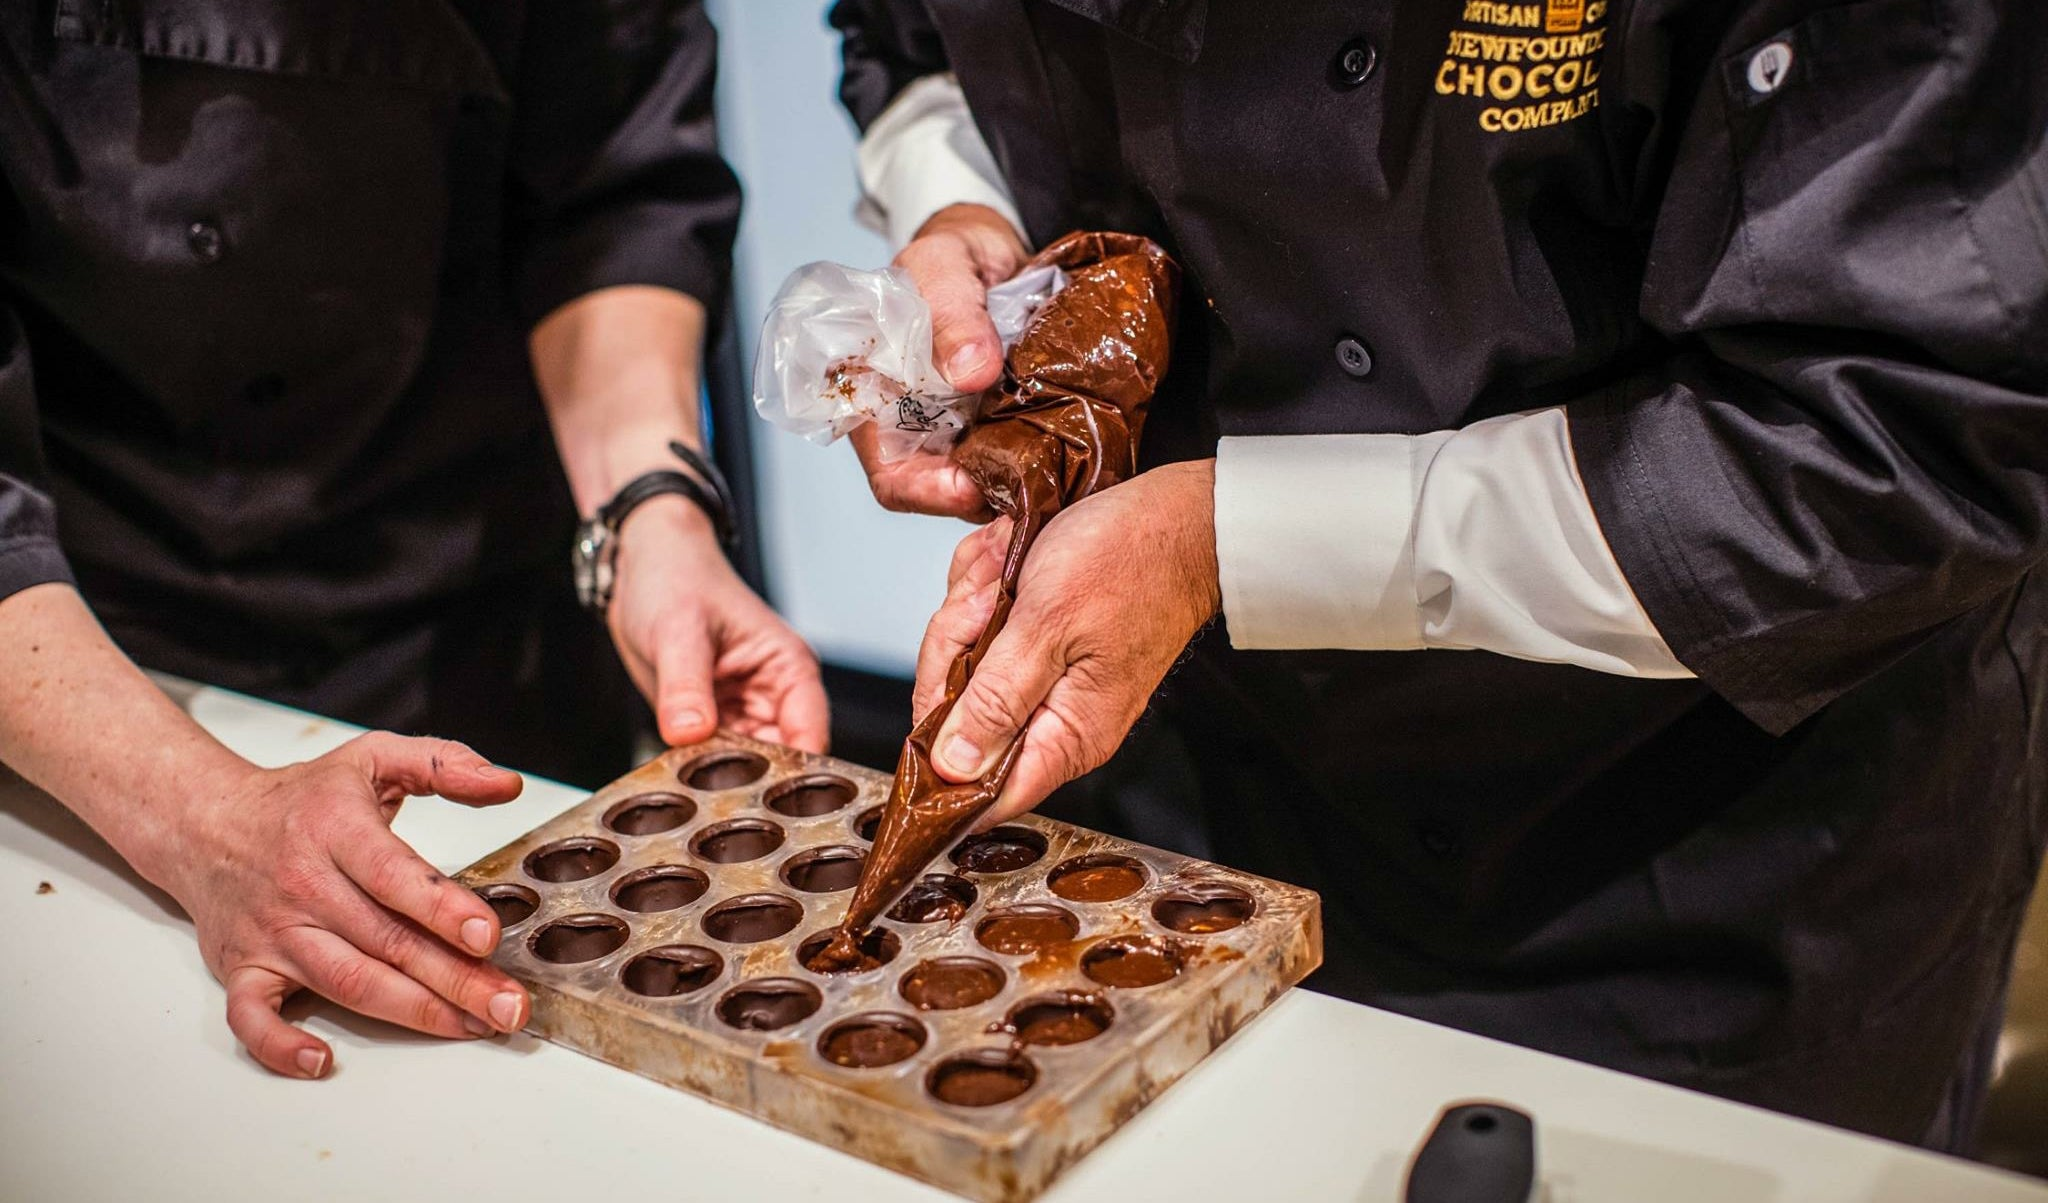 Shot from the shoulders down. A person fills a mold with chocolate using a piping bag. A second person holds the edge of the mold.